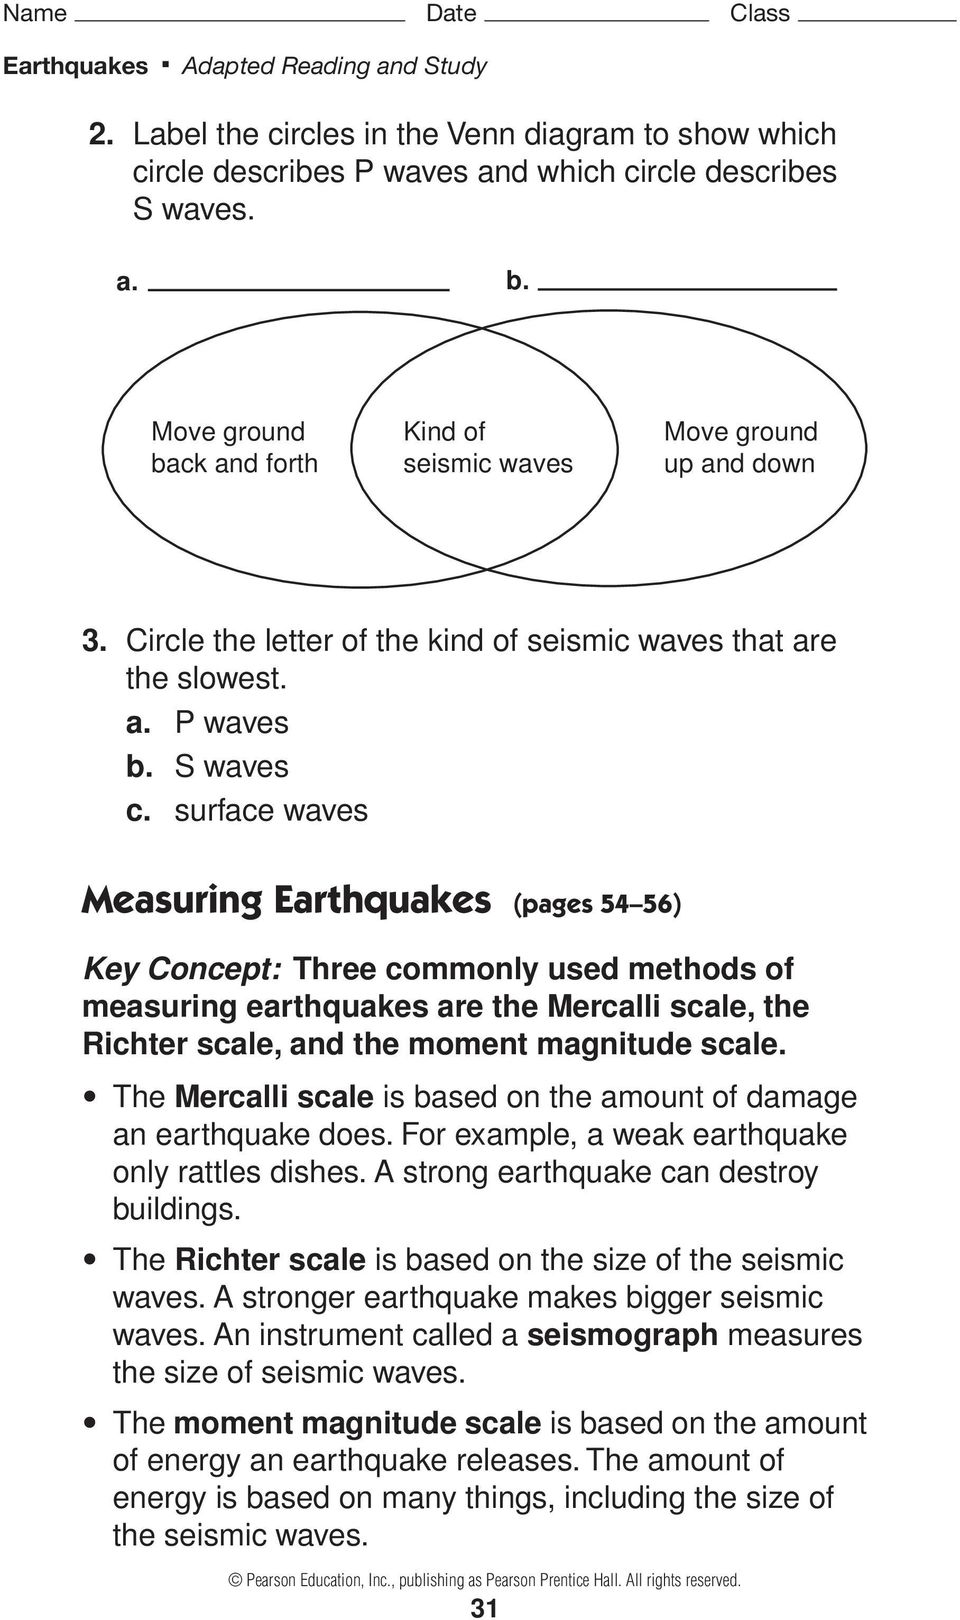 Worksheets Earthquakes And Seismic Waves Worksheet earthquakes and seismic waves pages 51 57 pdf surface measuring 54 56 key concept three commonly used methods